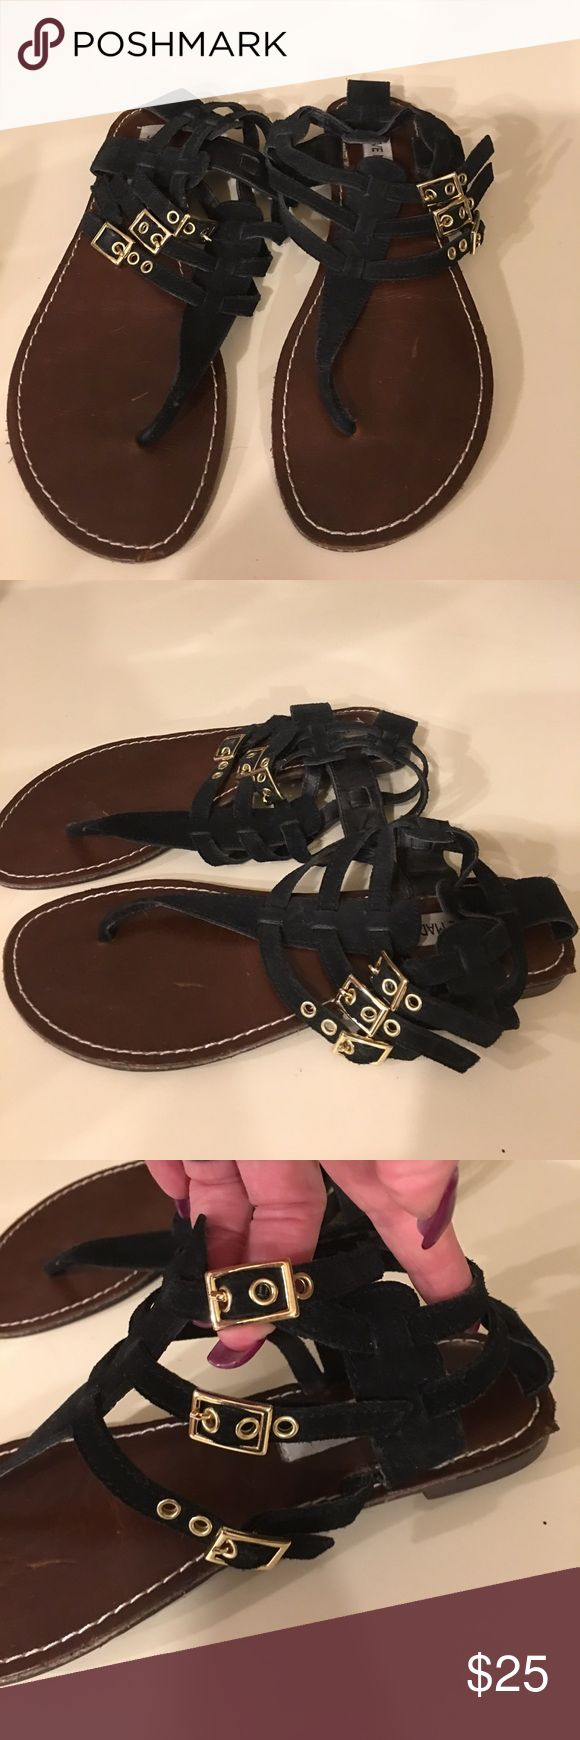 Steve Madden Gladiator Sandals Steve Madden black Leather Gladiator Sandals only worn once. EUC. Size 8 1/2 Steve Madden Shoes Flats & Loafers